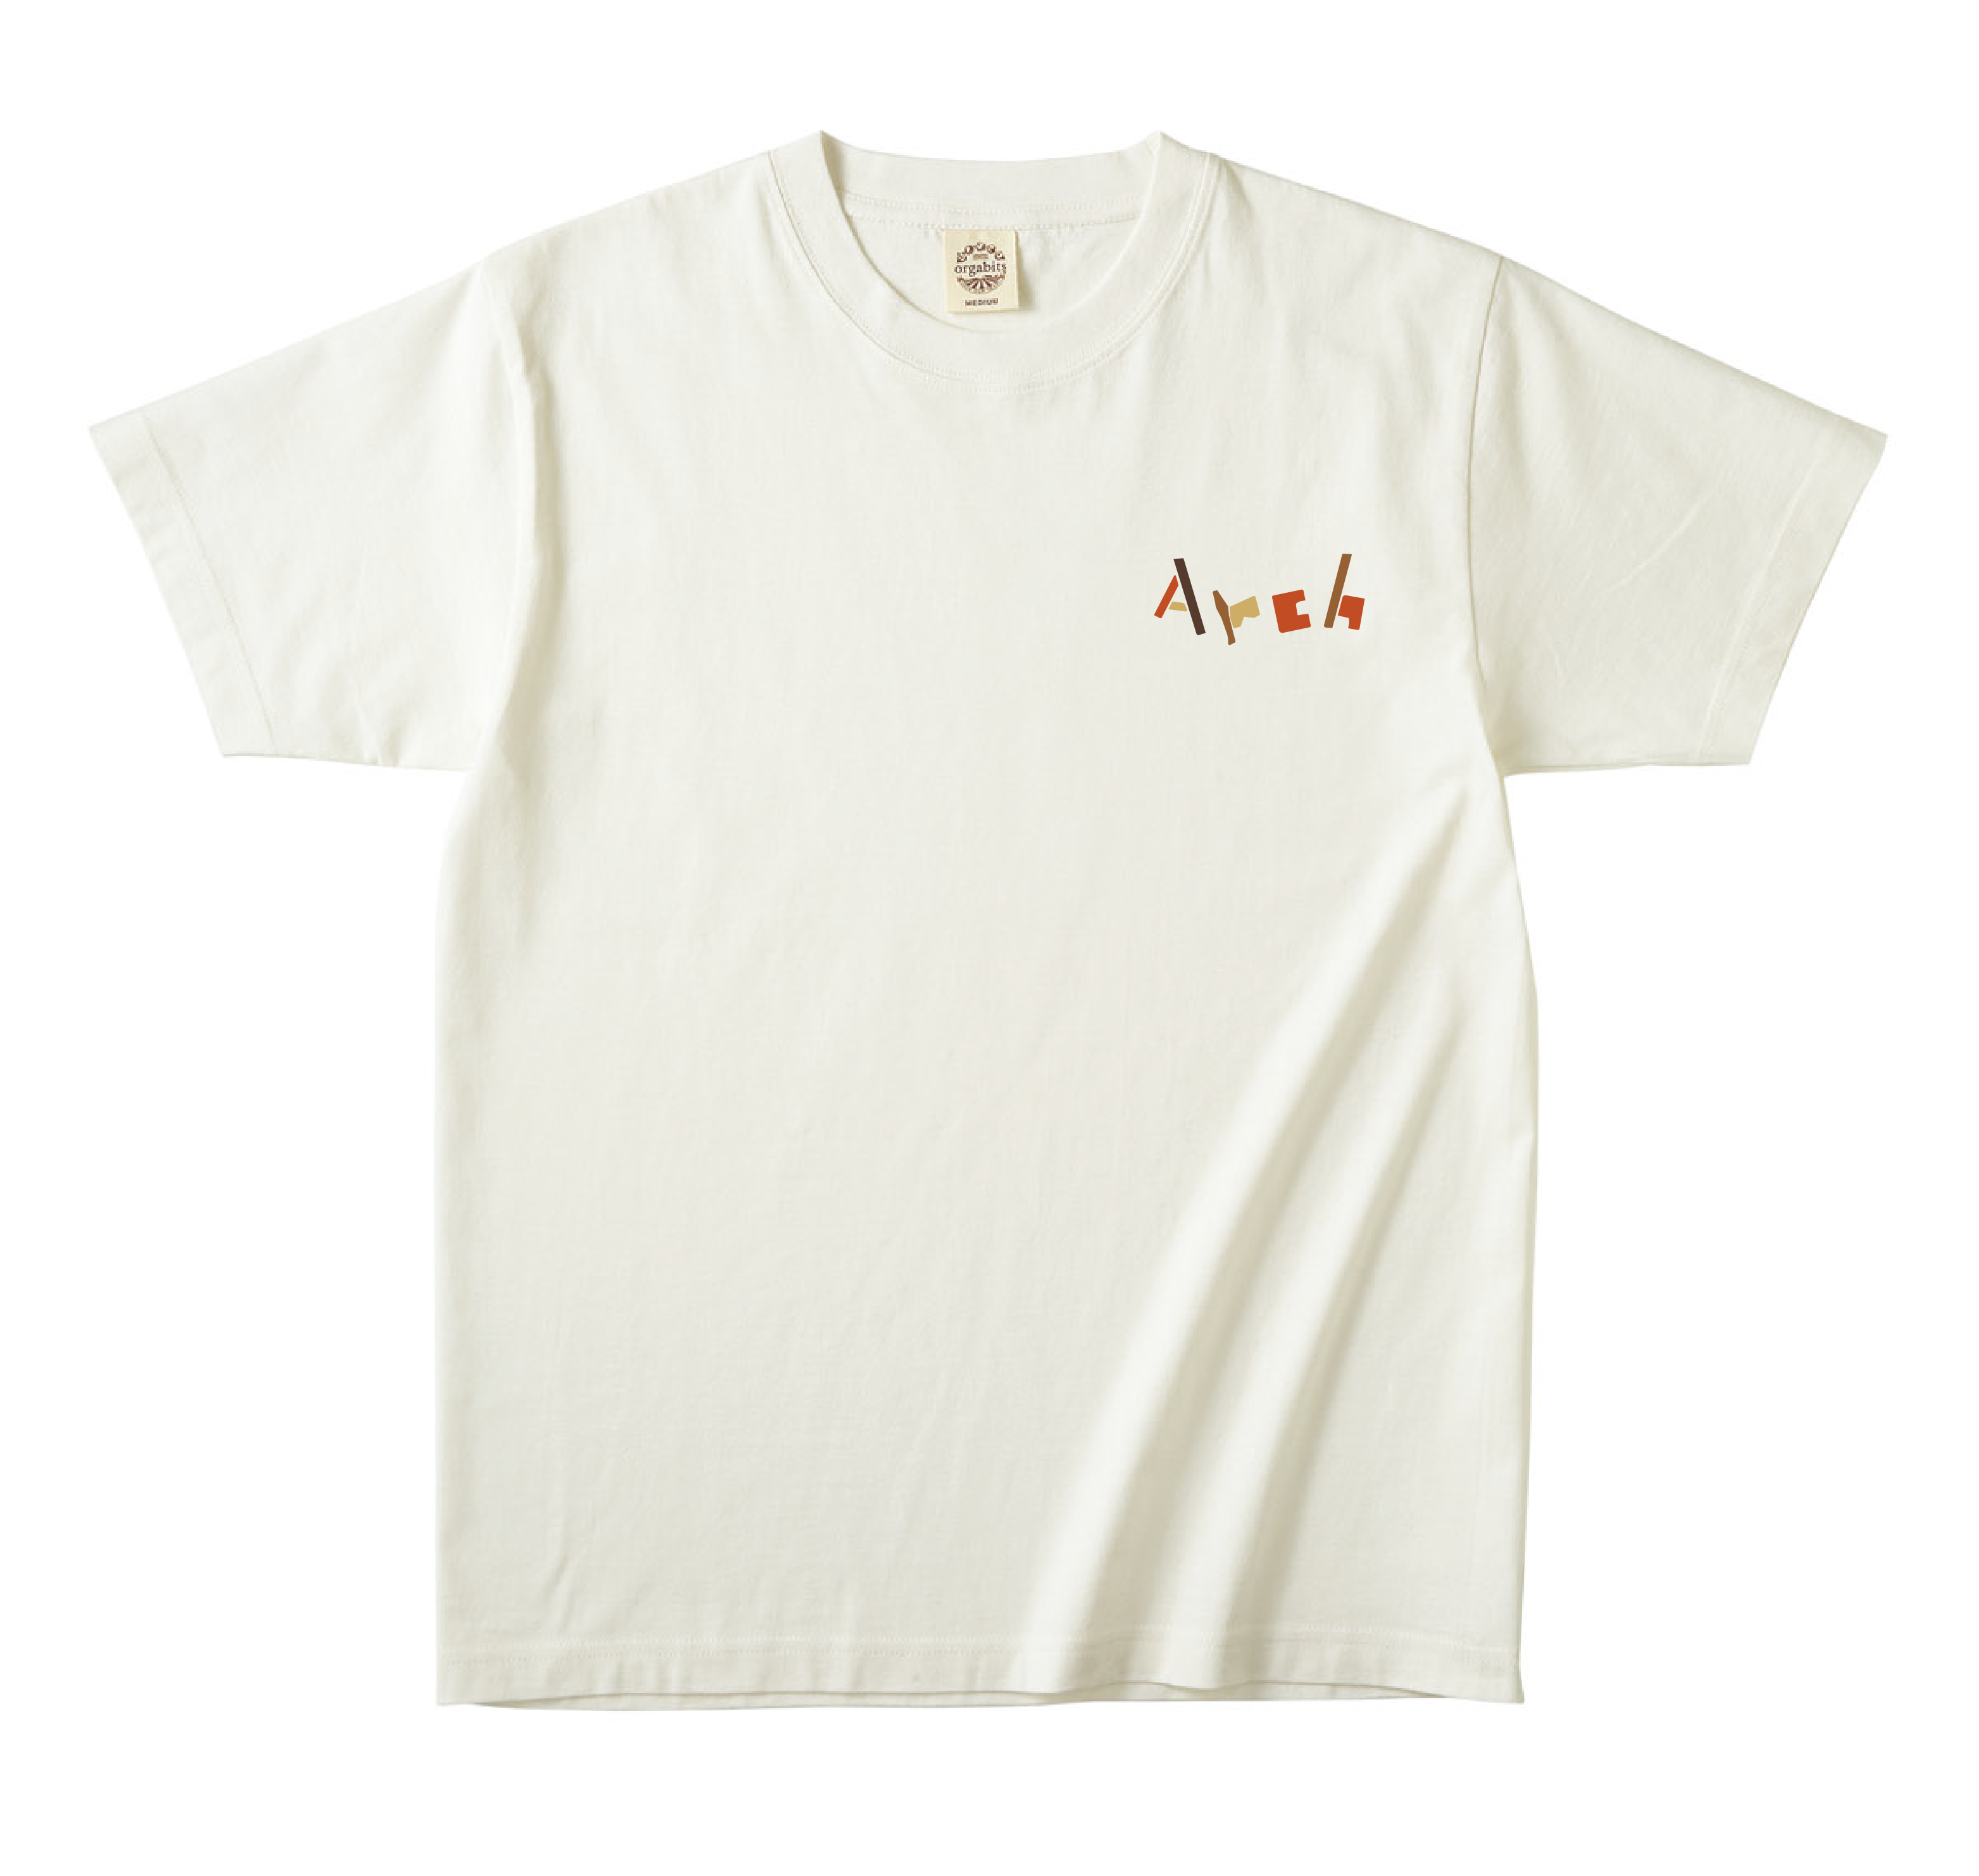 Wood Worker's Sustainable Fashion Brand --Arch--